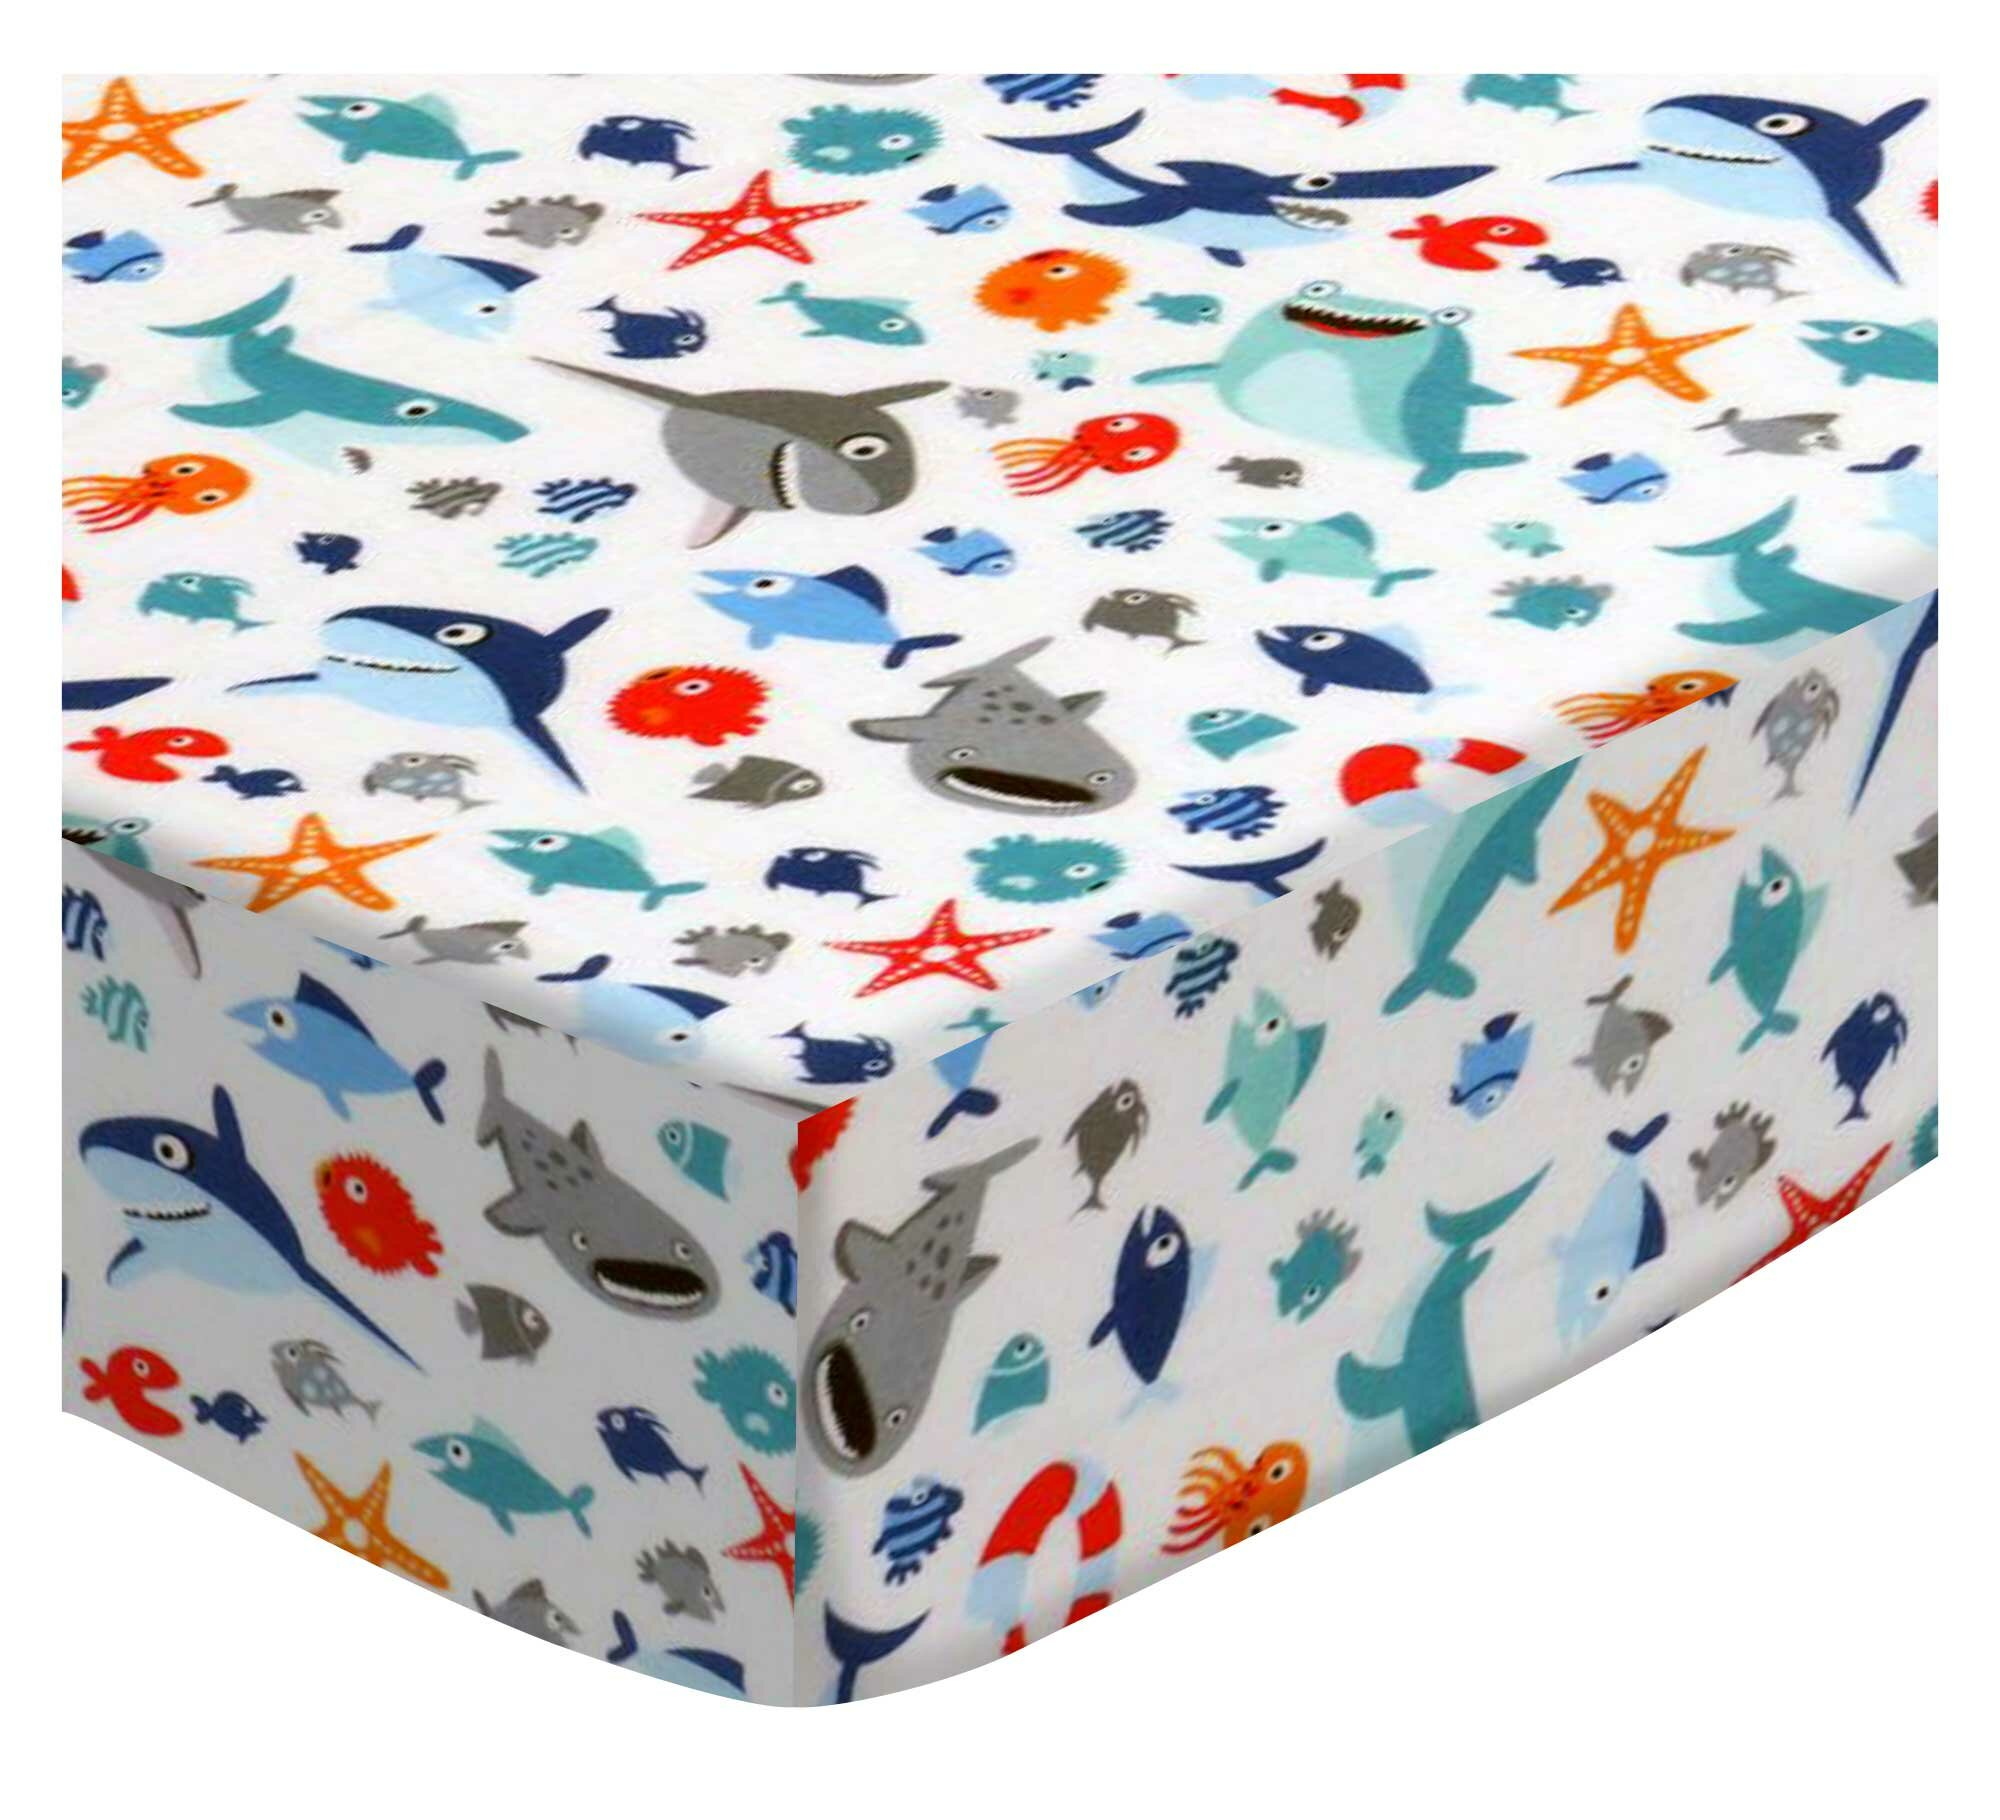 SheetWorld Fitted 100/% Cotton Percale Portable Mini Crib Sheet 24 x 38 Baby Sharks Made in USA